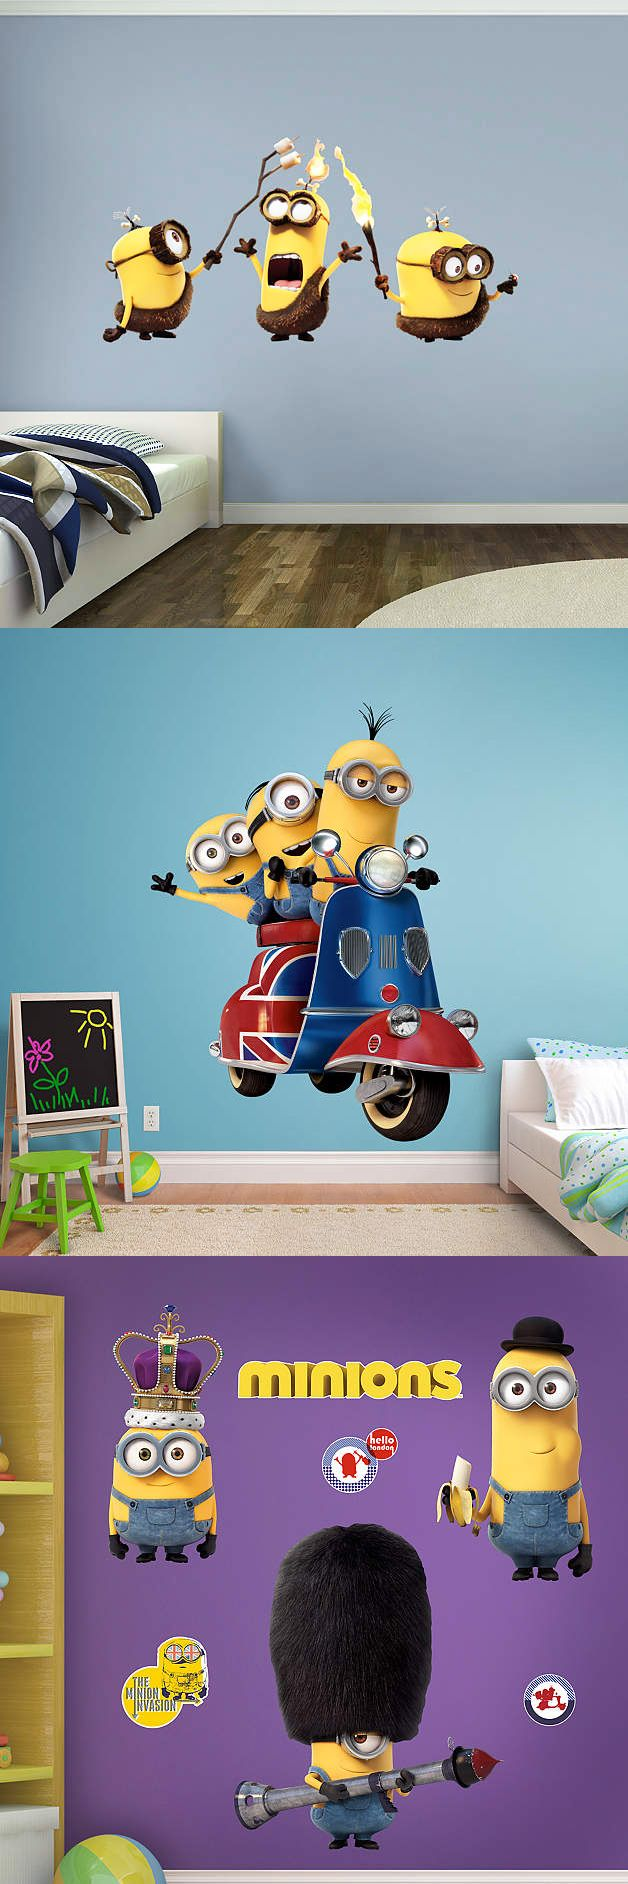 Bring home the cuteness with Minion Fathead peel & stick wall decals!